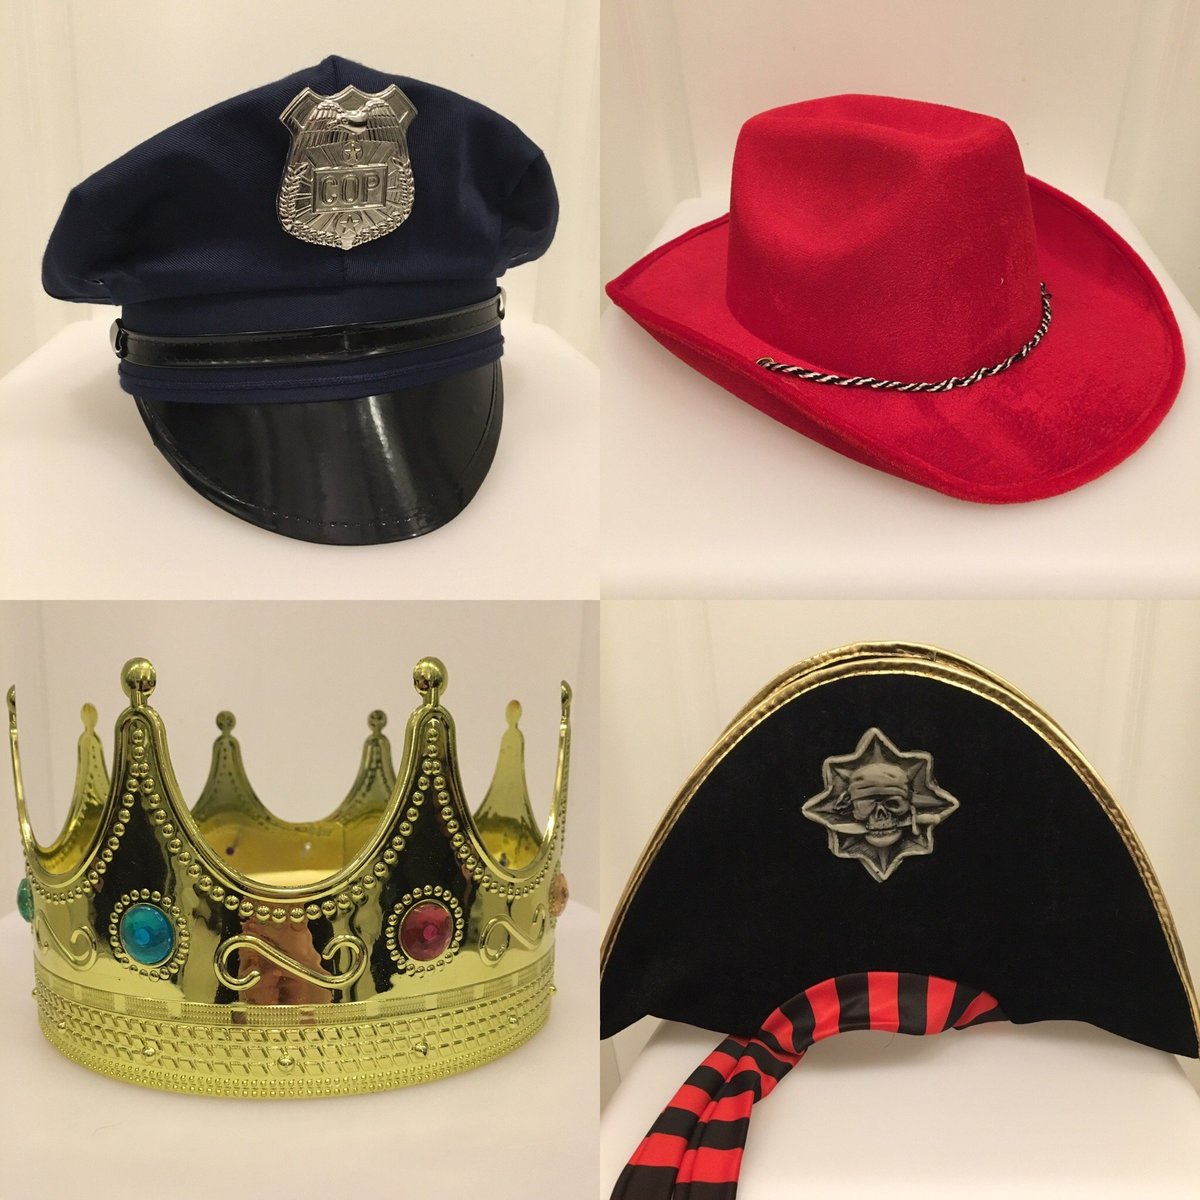 crown-police-pirate-hats